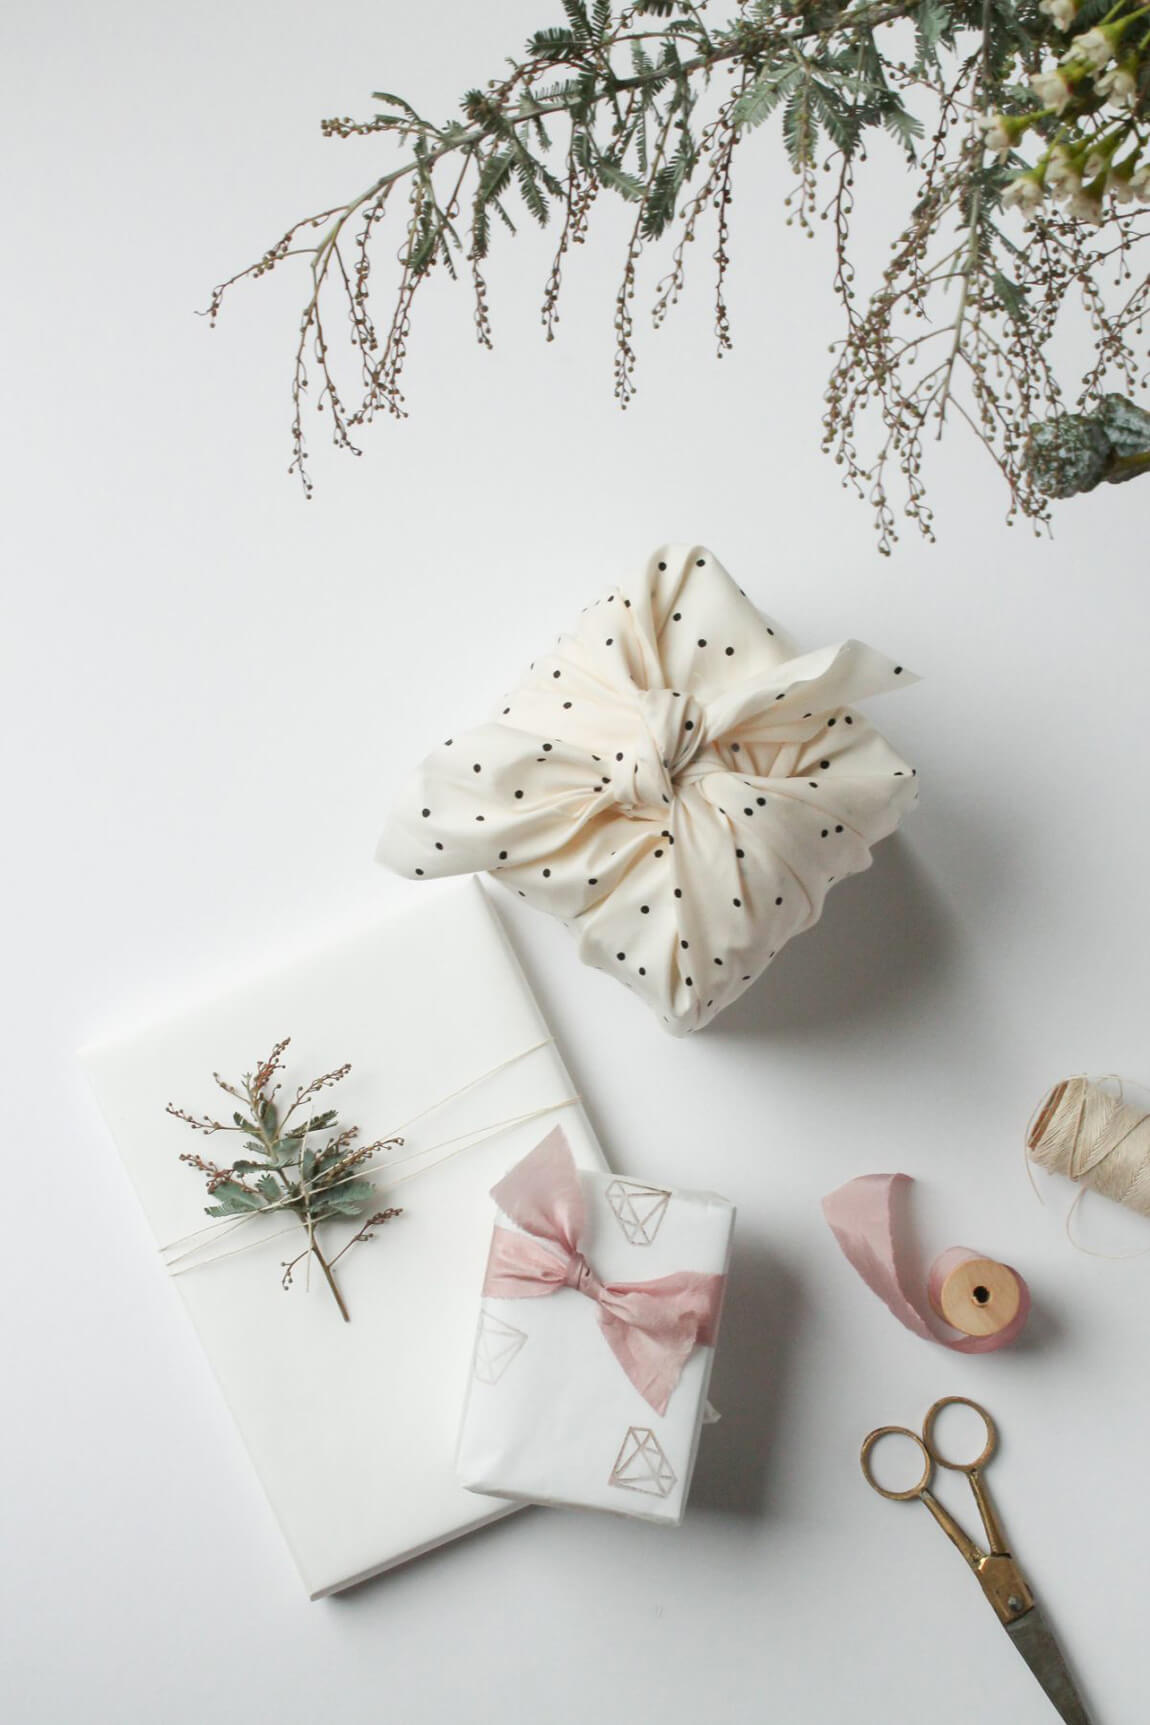 Paper free gift wrapping ideas, using spare fabric and low grade baking paper